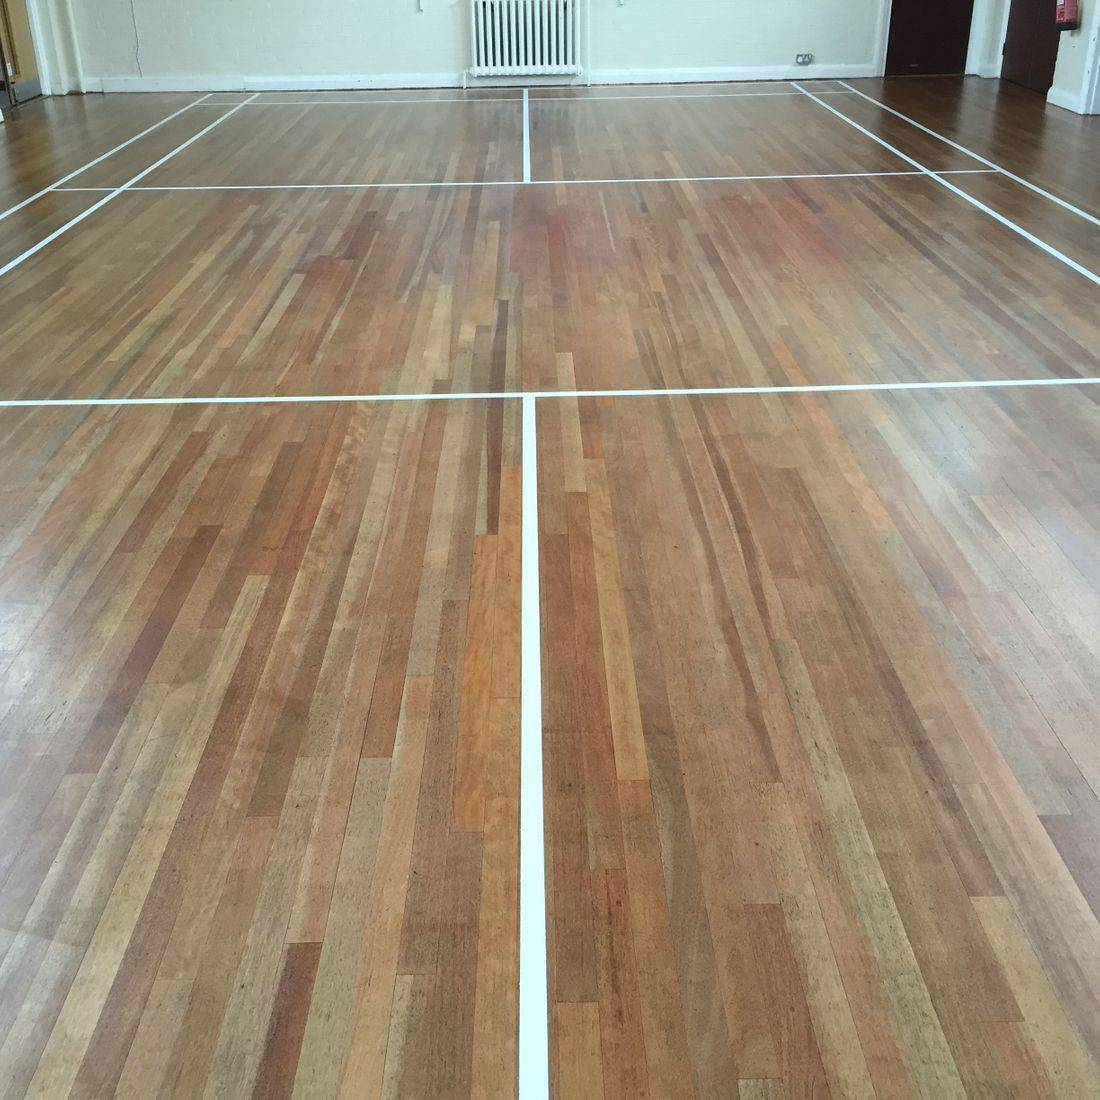 Church hall in Oadby Leicester after sanding and sealing